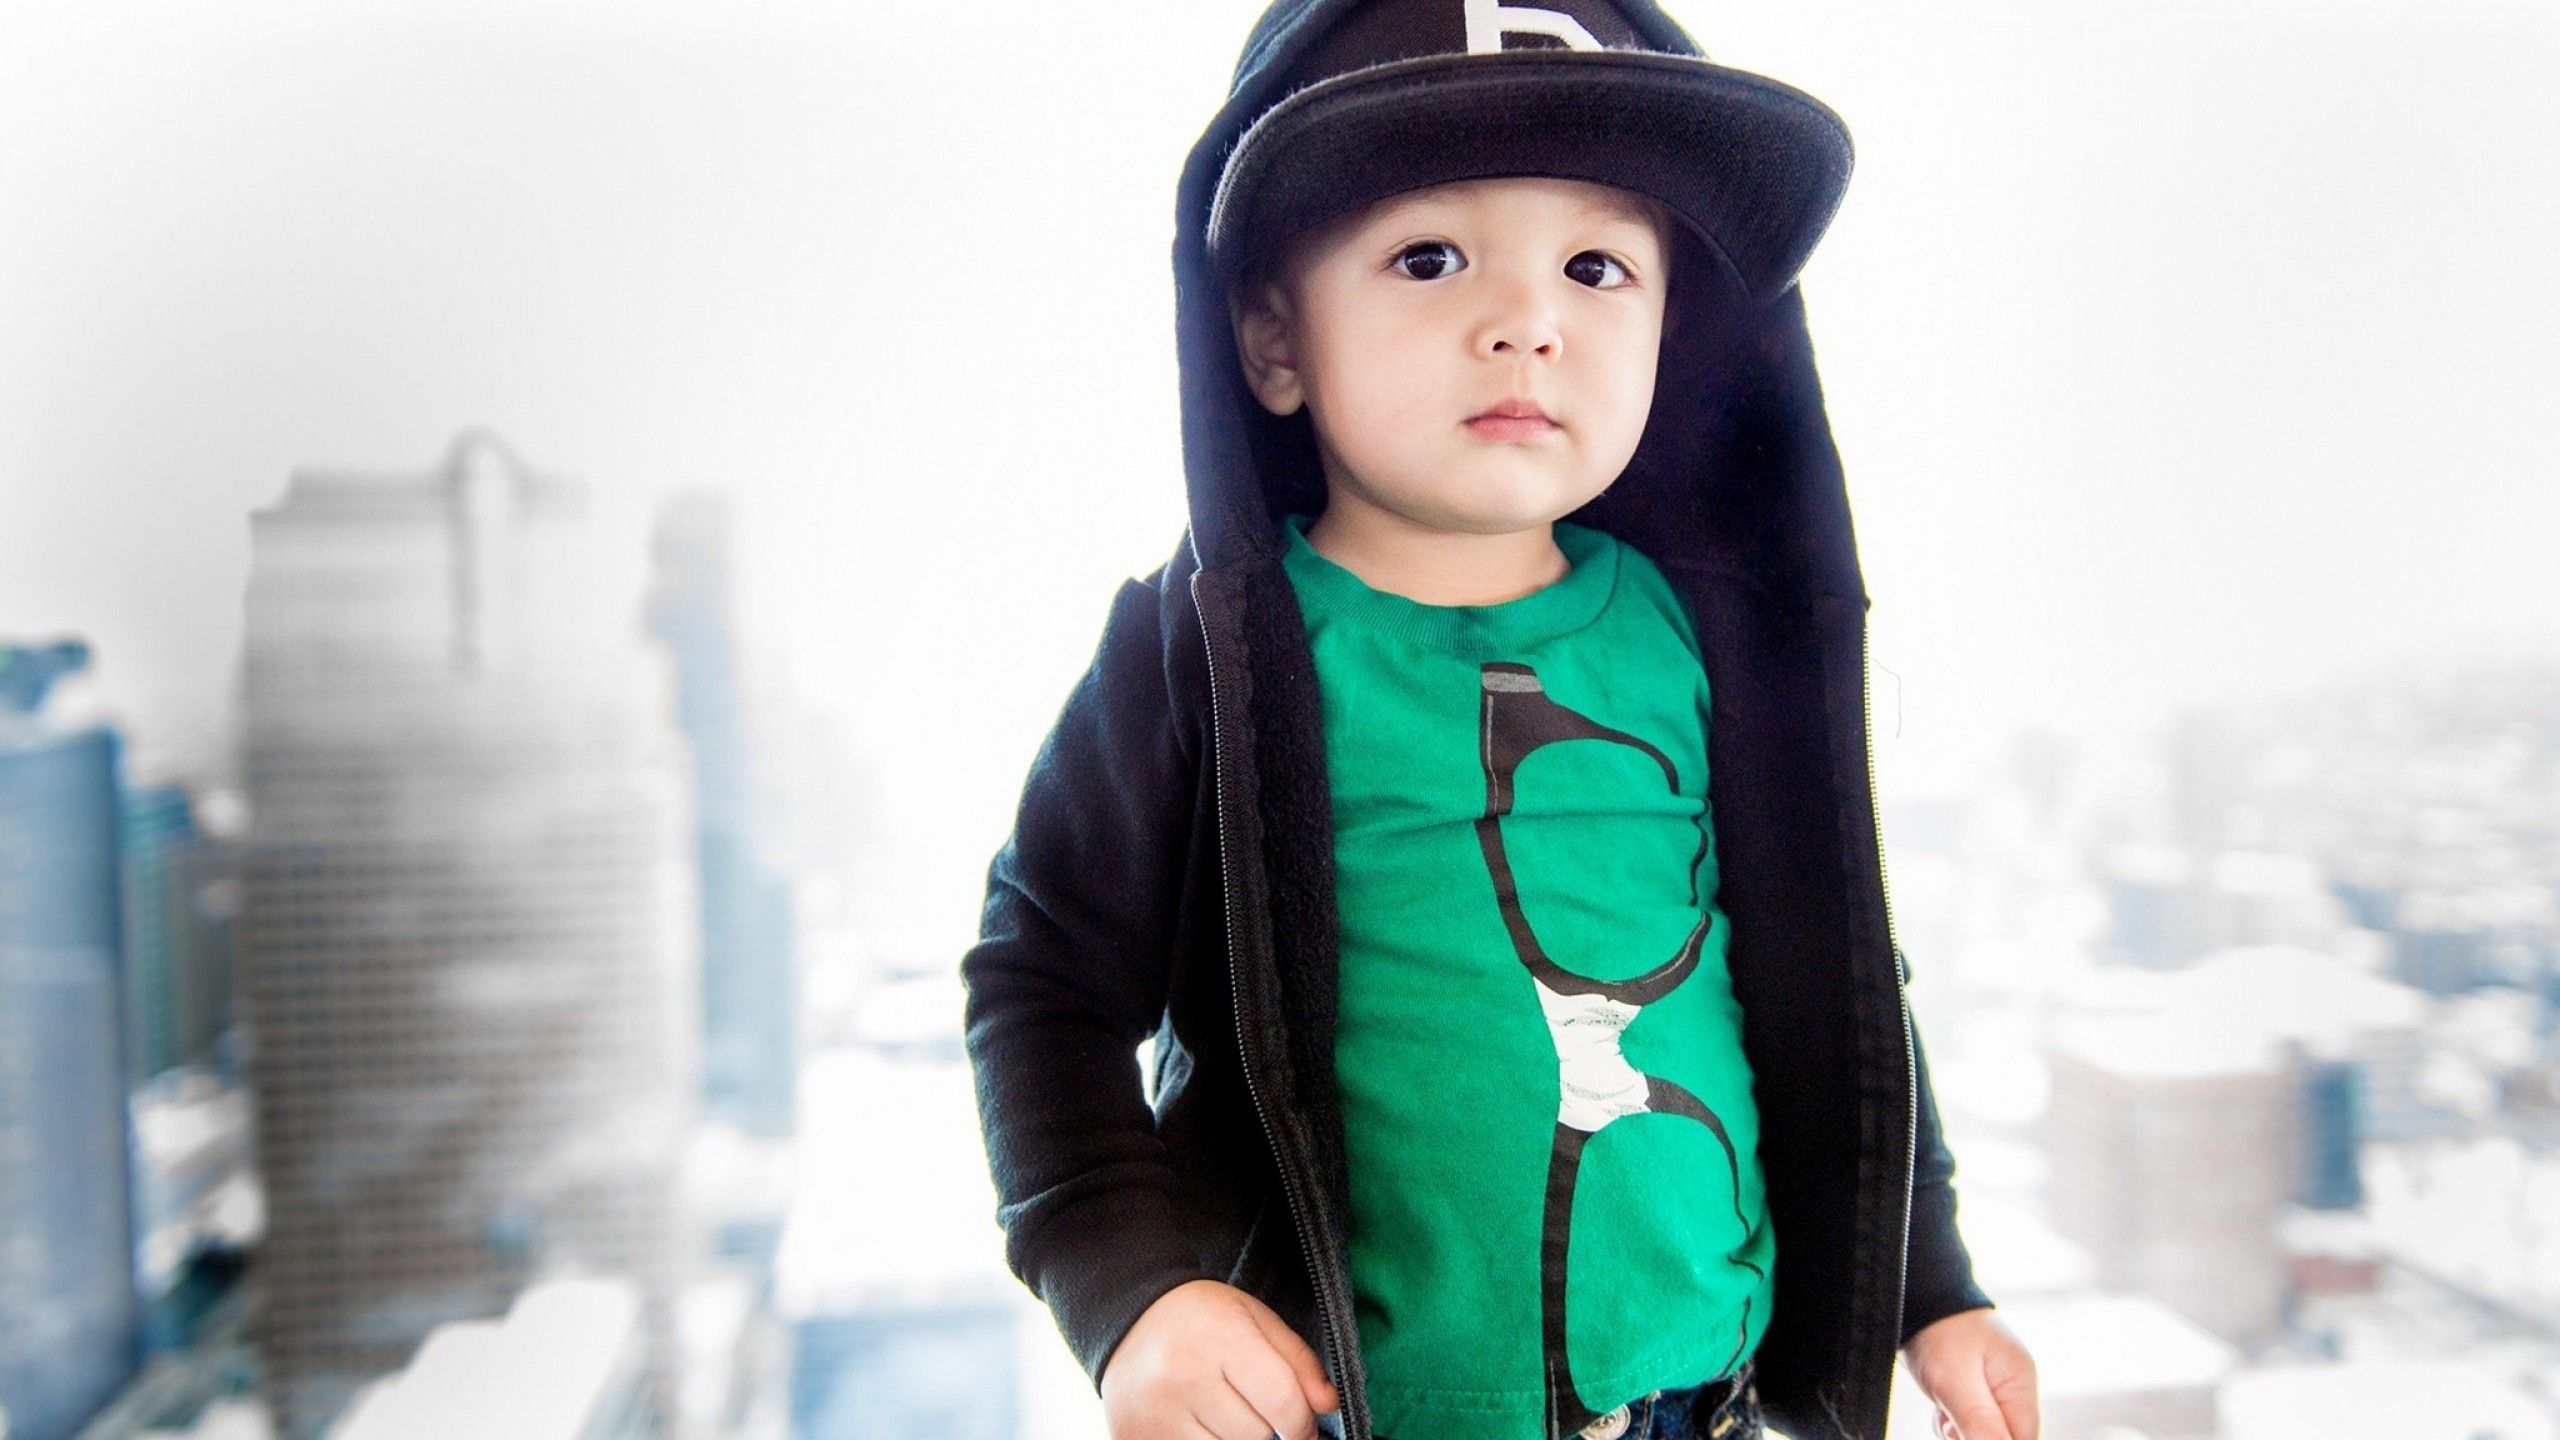 cool baby | streetbasketball | pinterest | wallpaper